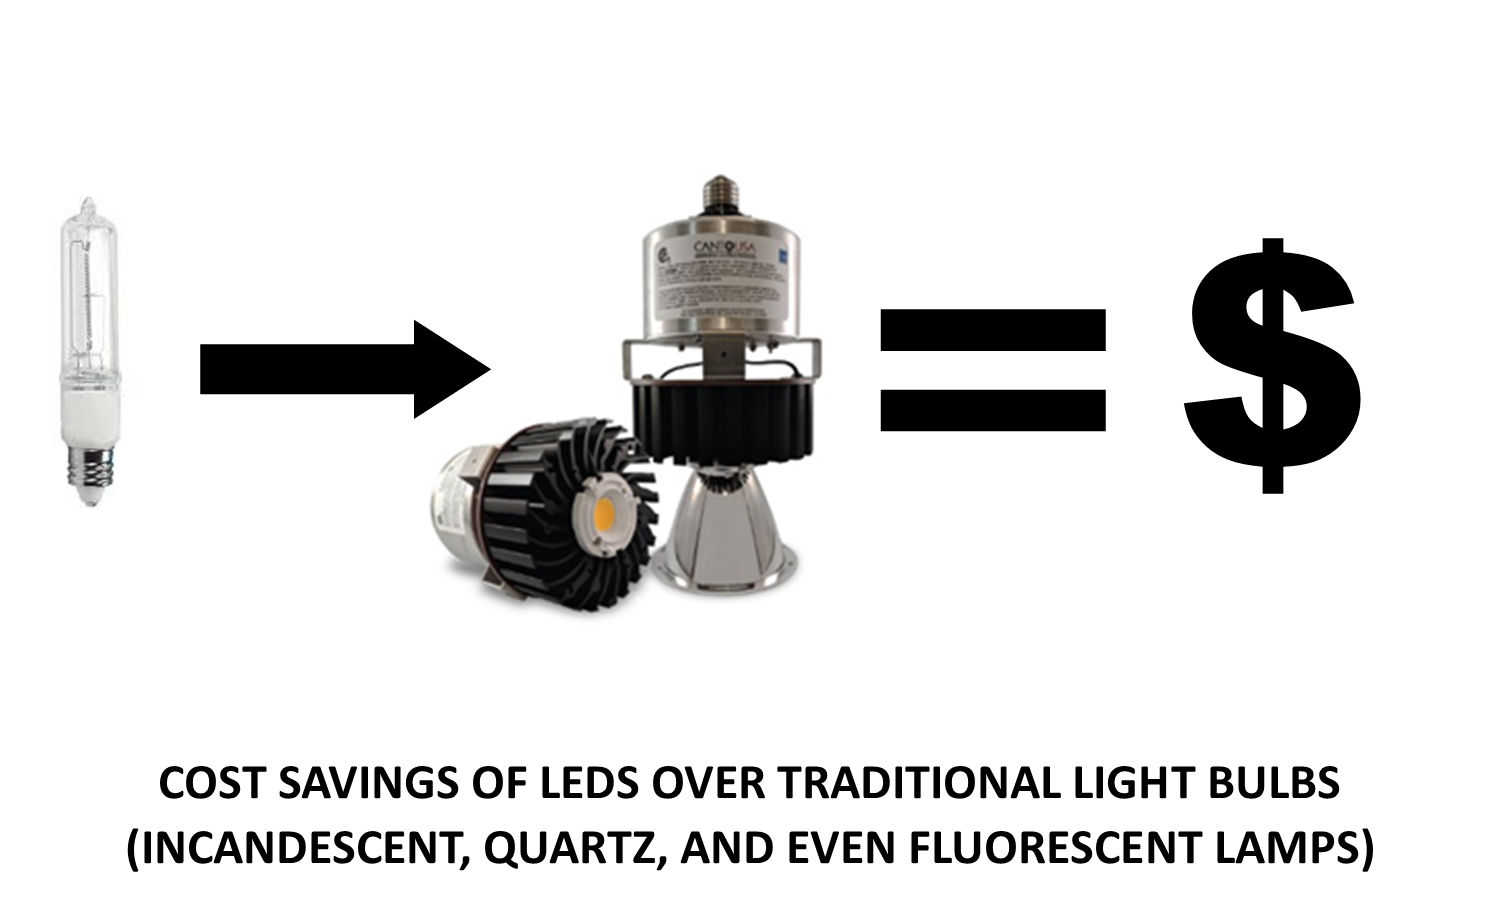 COST SAVINGS OF LED'S OVER TRADITIONAL LIGHT BULBS (INCANDESCENT, QUARTZ, AND EVEN FLUORESCENT LAMPS)